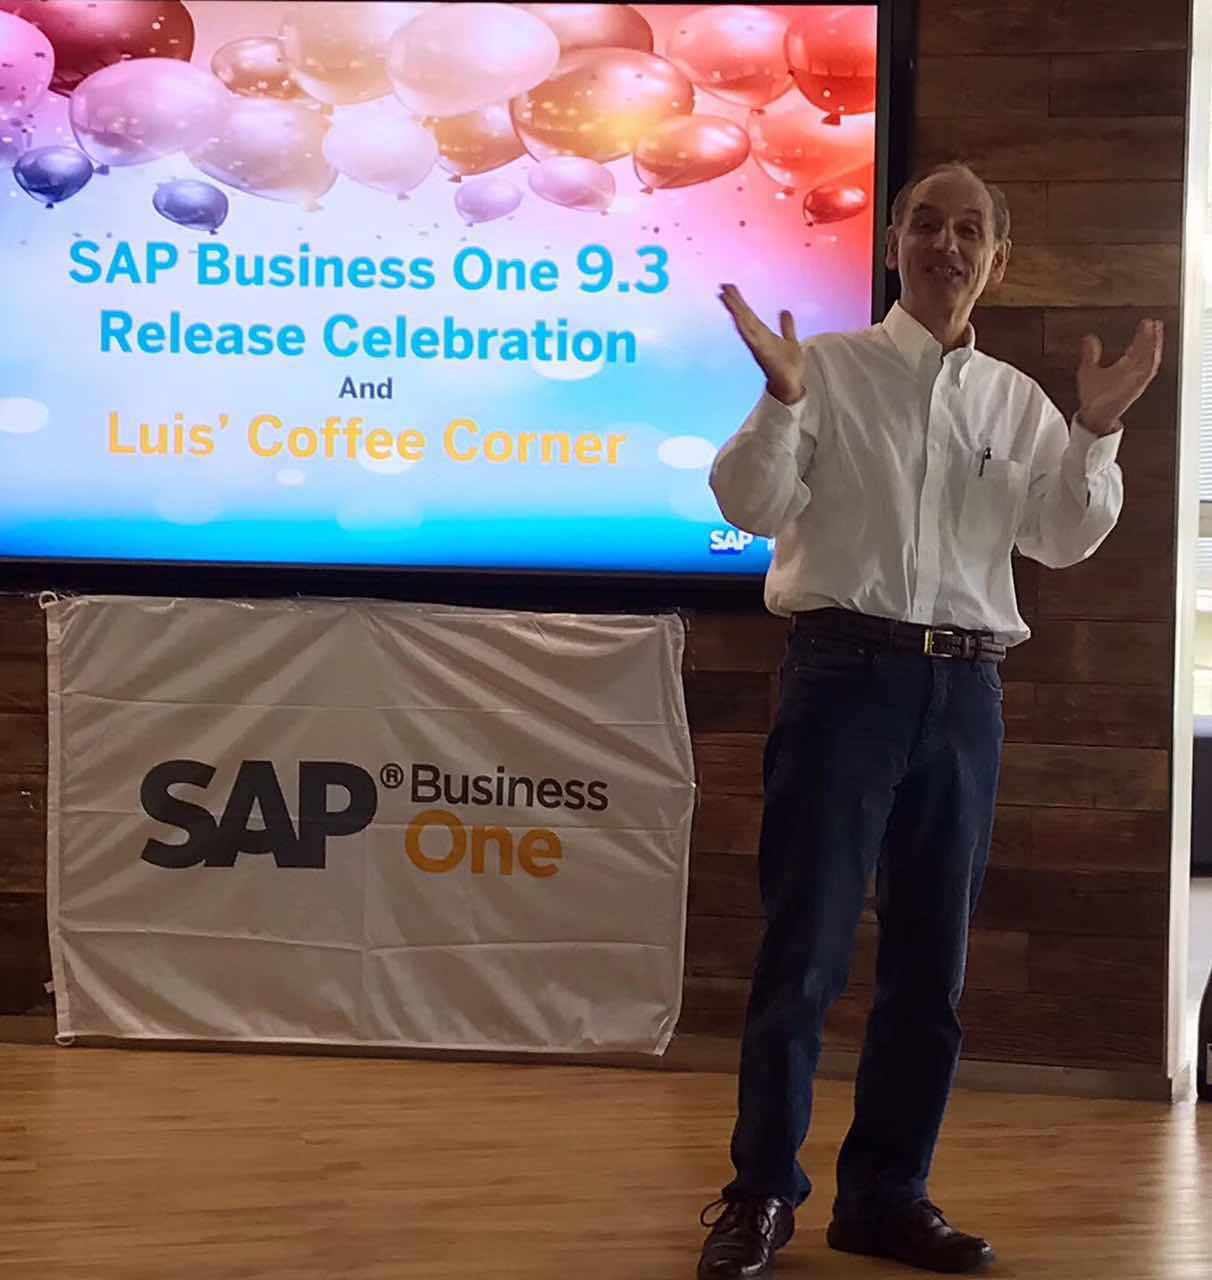 SAP_Business_one9.3_5.jpg